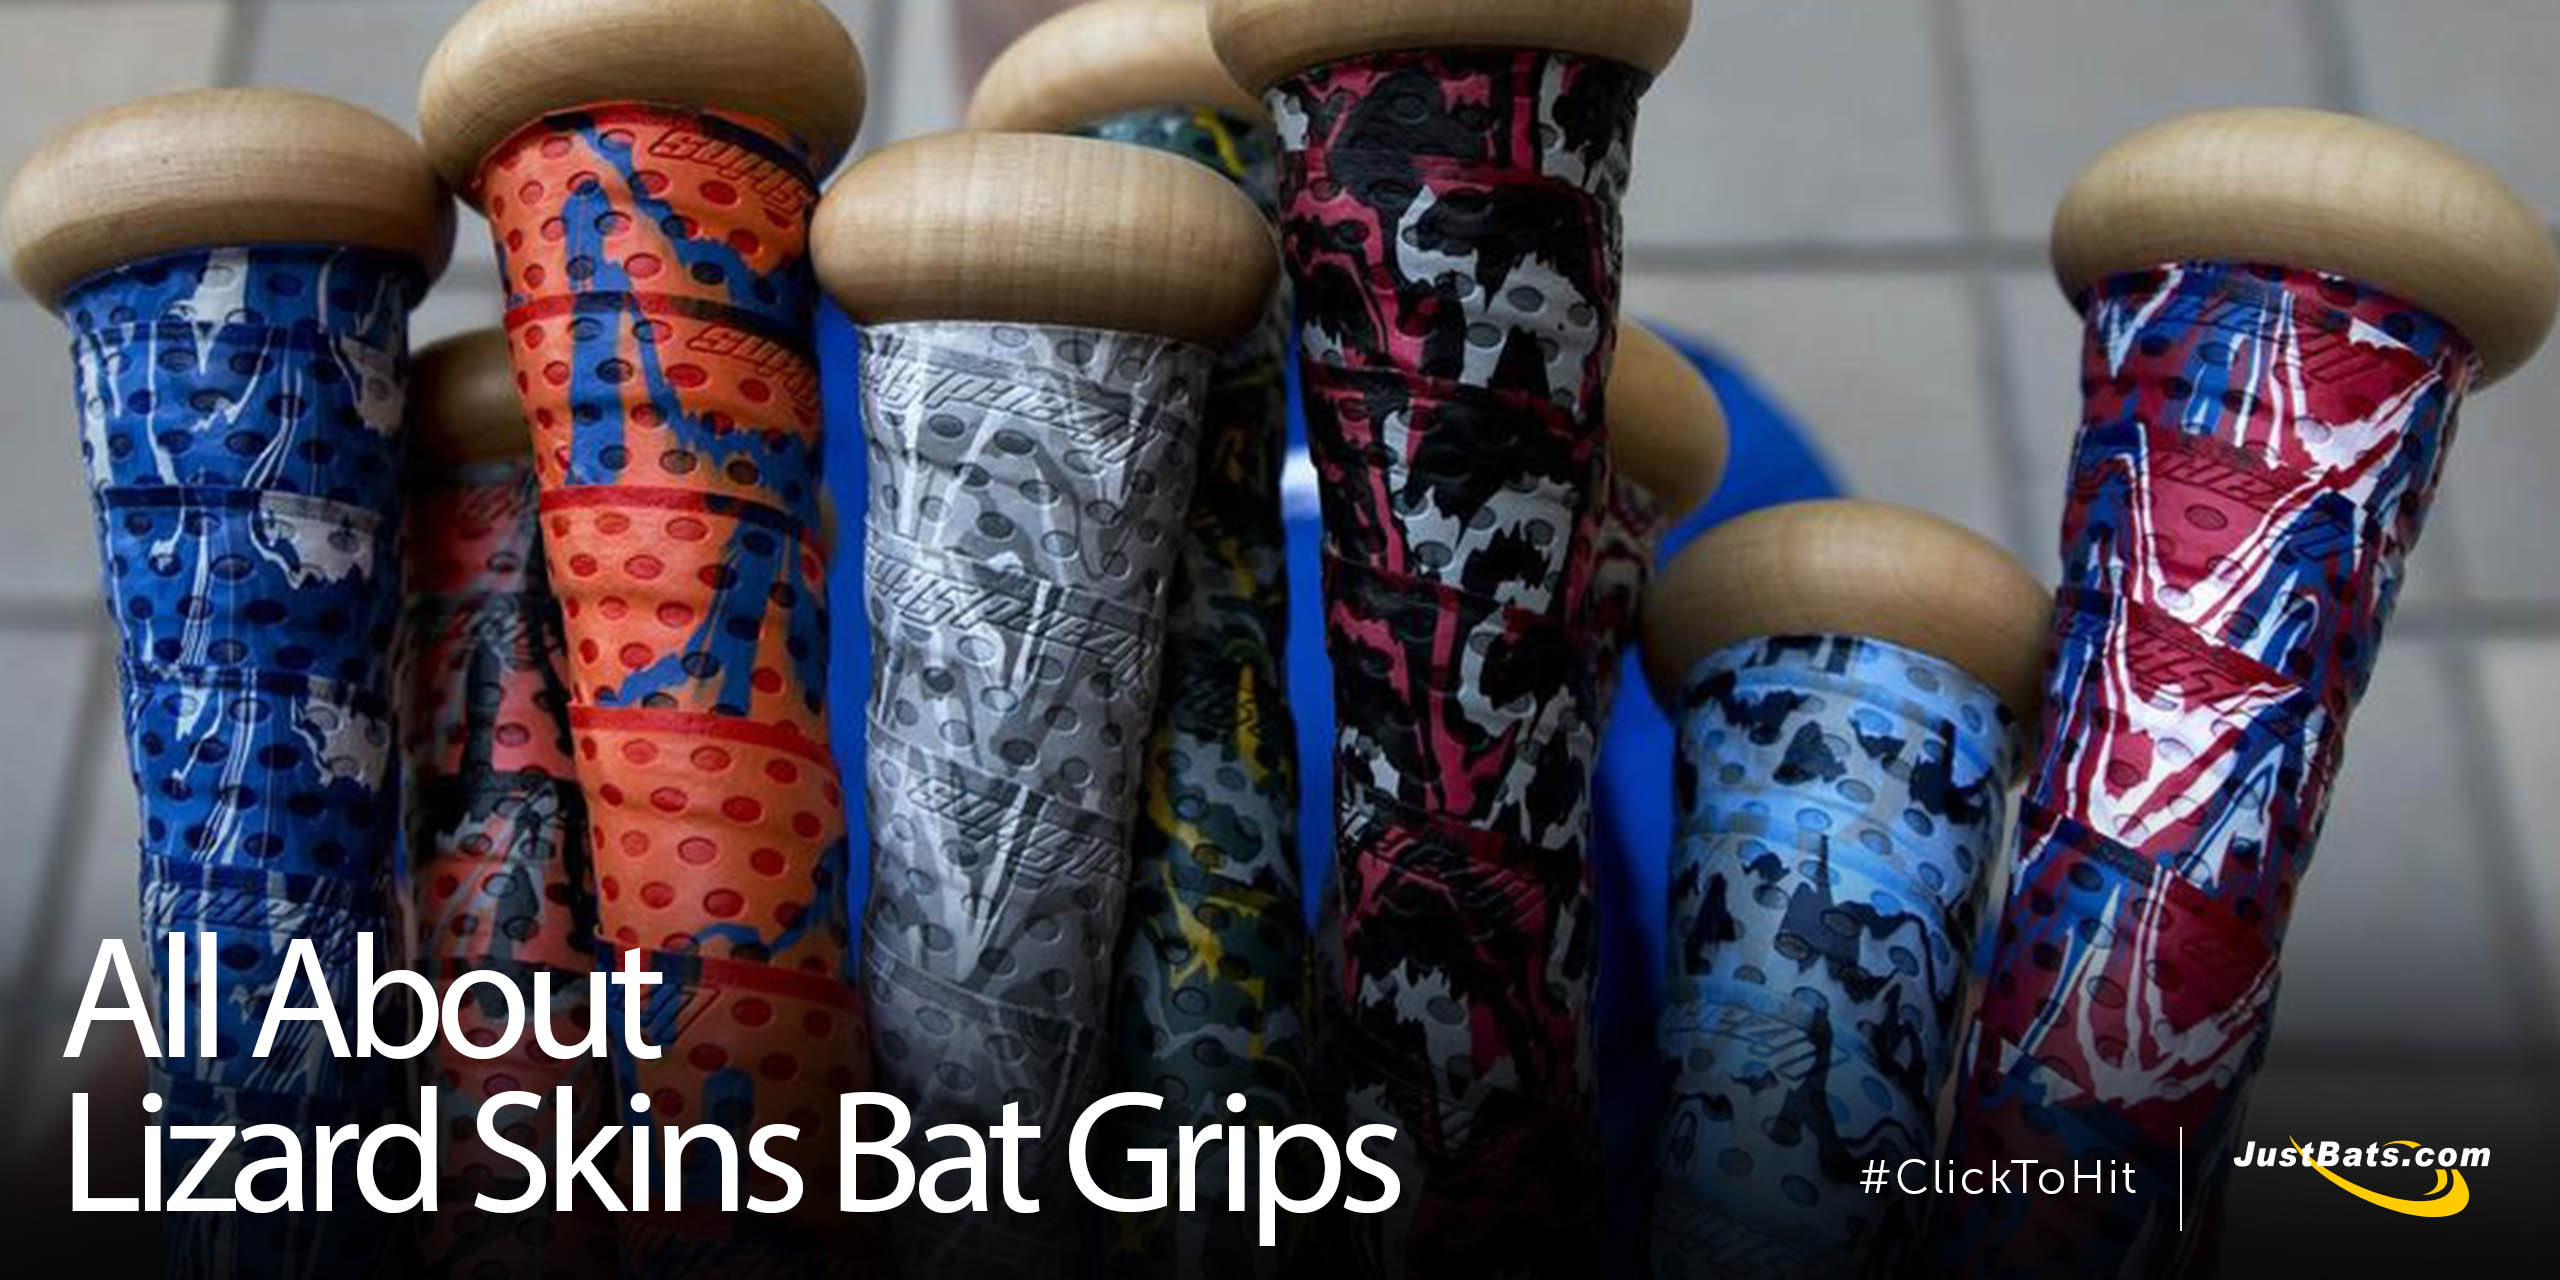 All About Lizard Skins Bat Grips - Blog.jpg